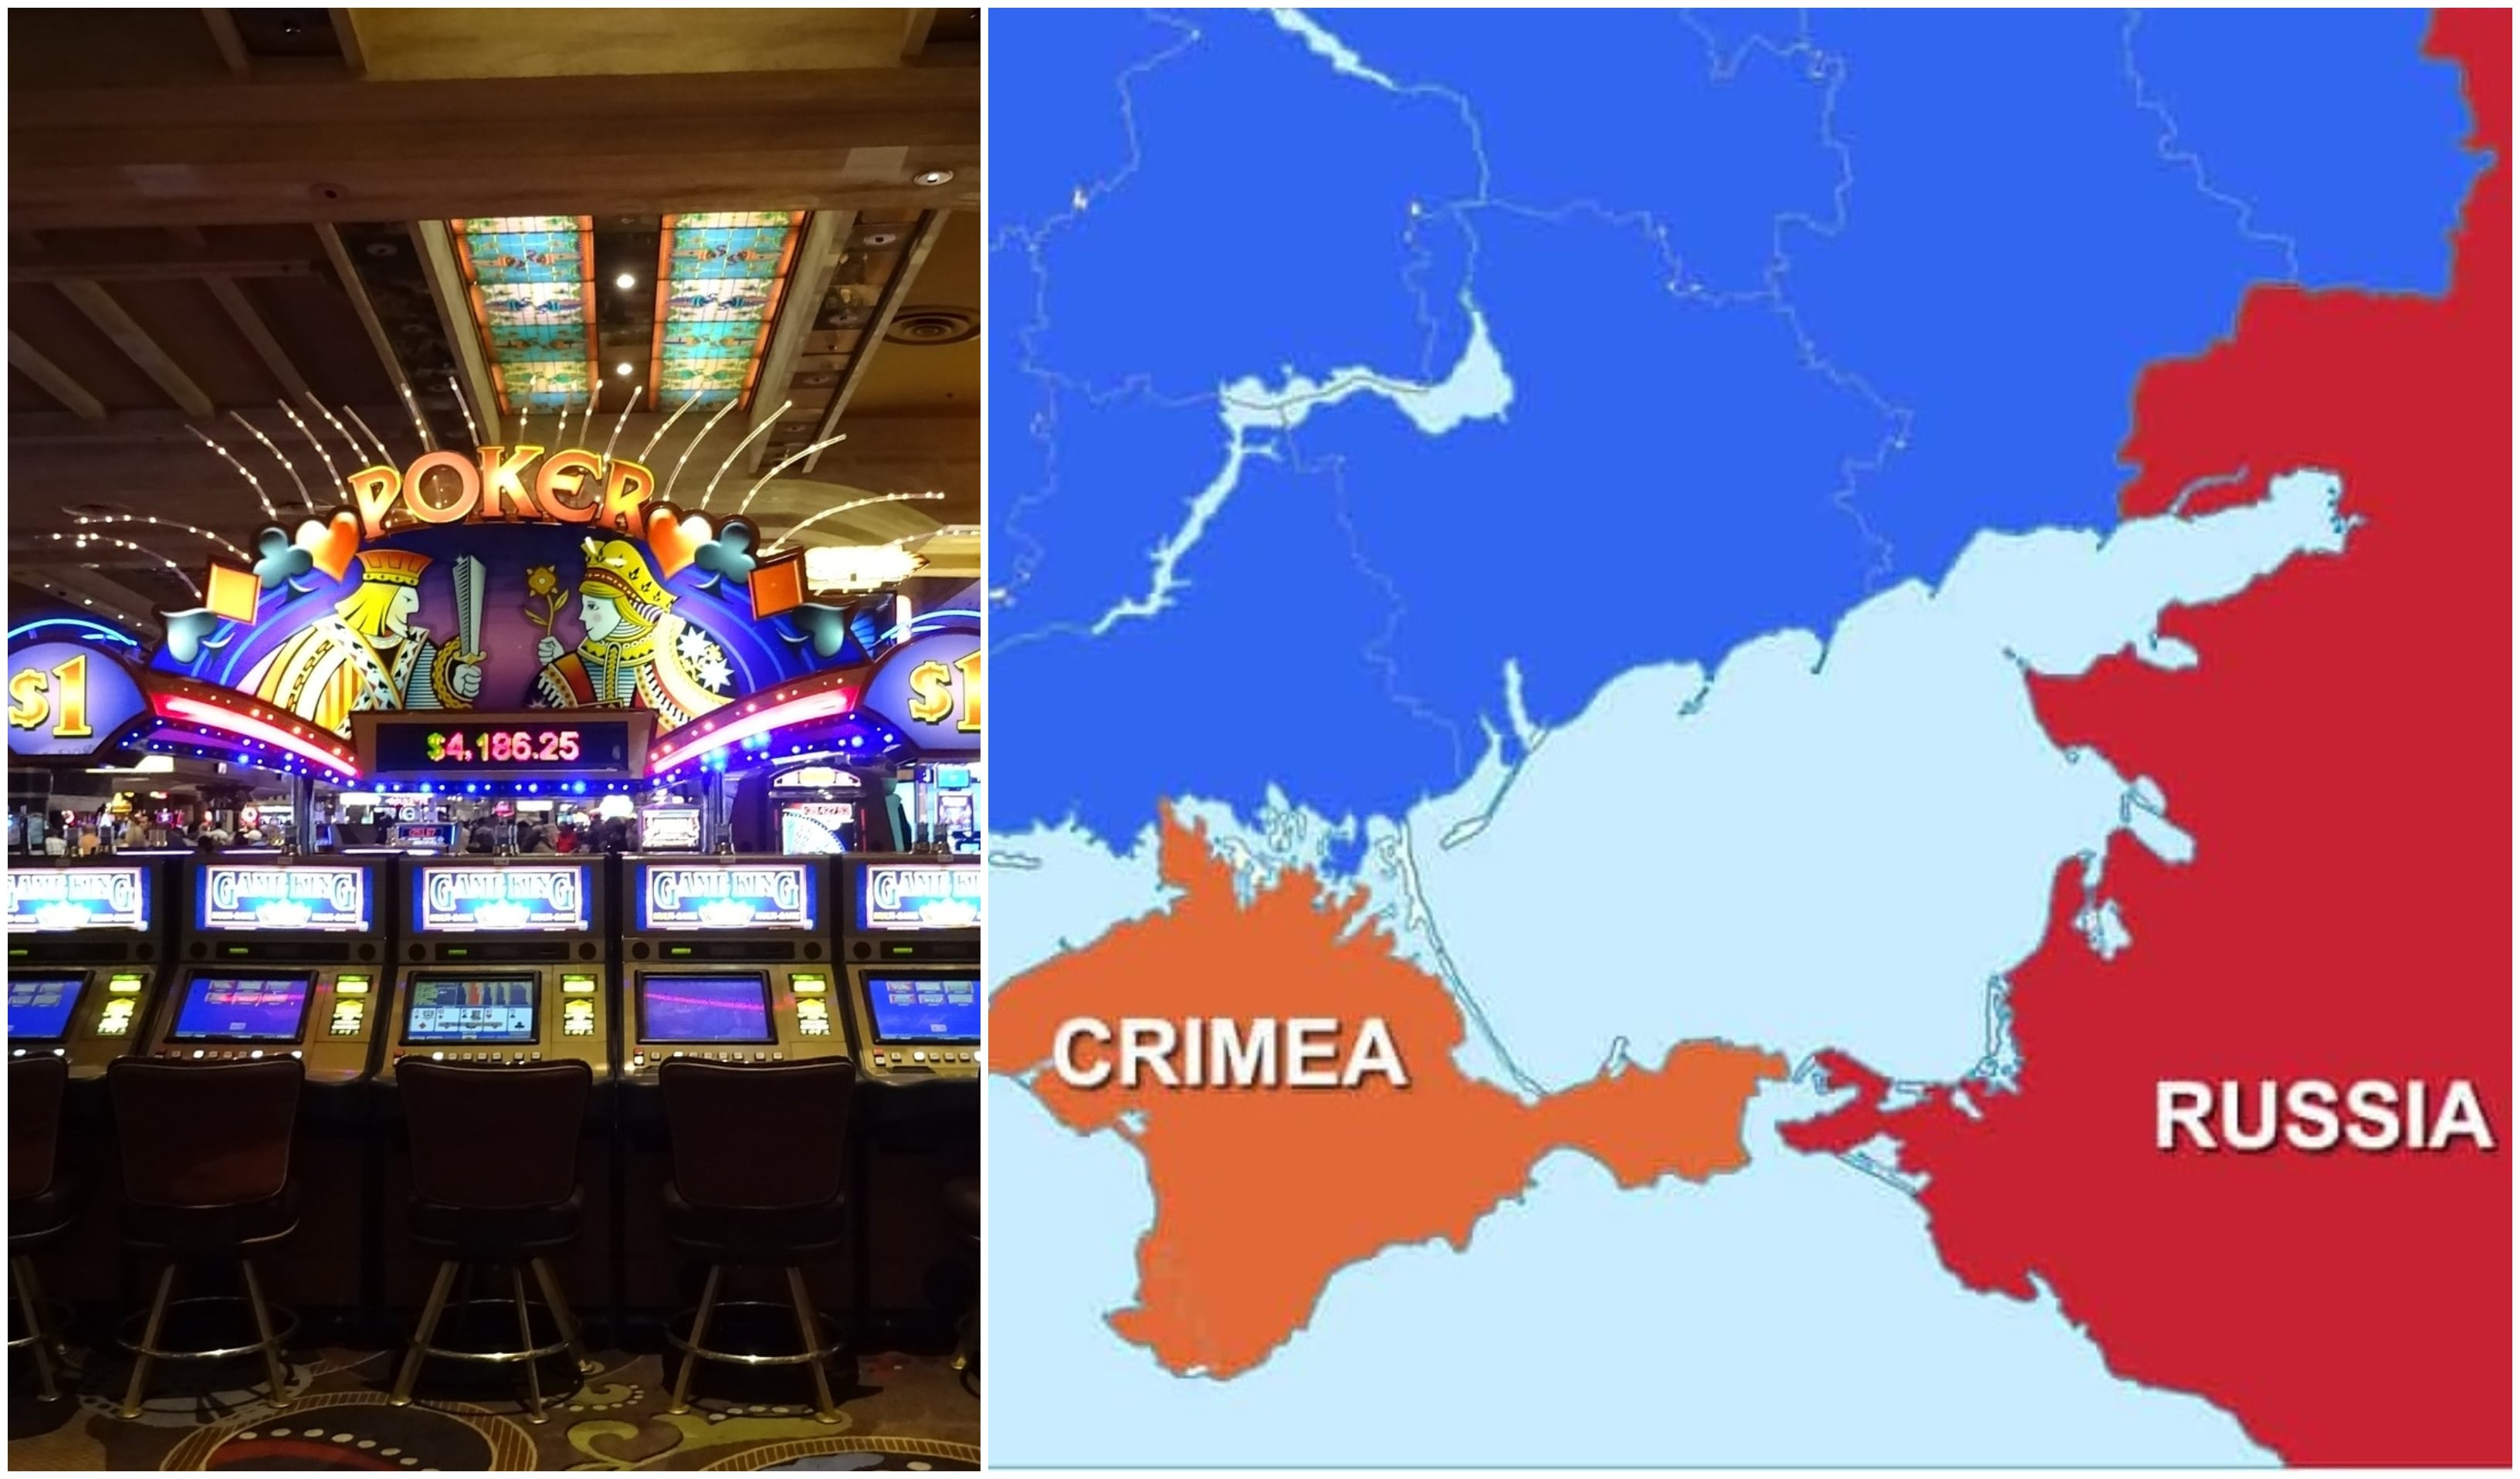 Russian Prime Minister has announced that a gambling zone will be opened in Yalta, Crimea.